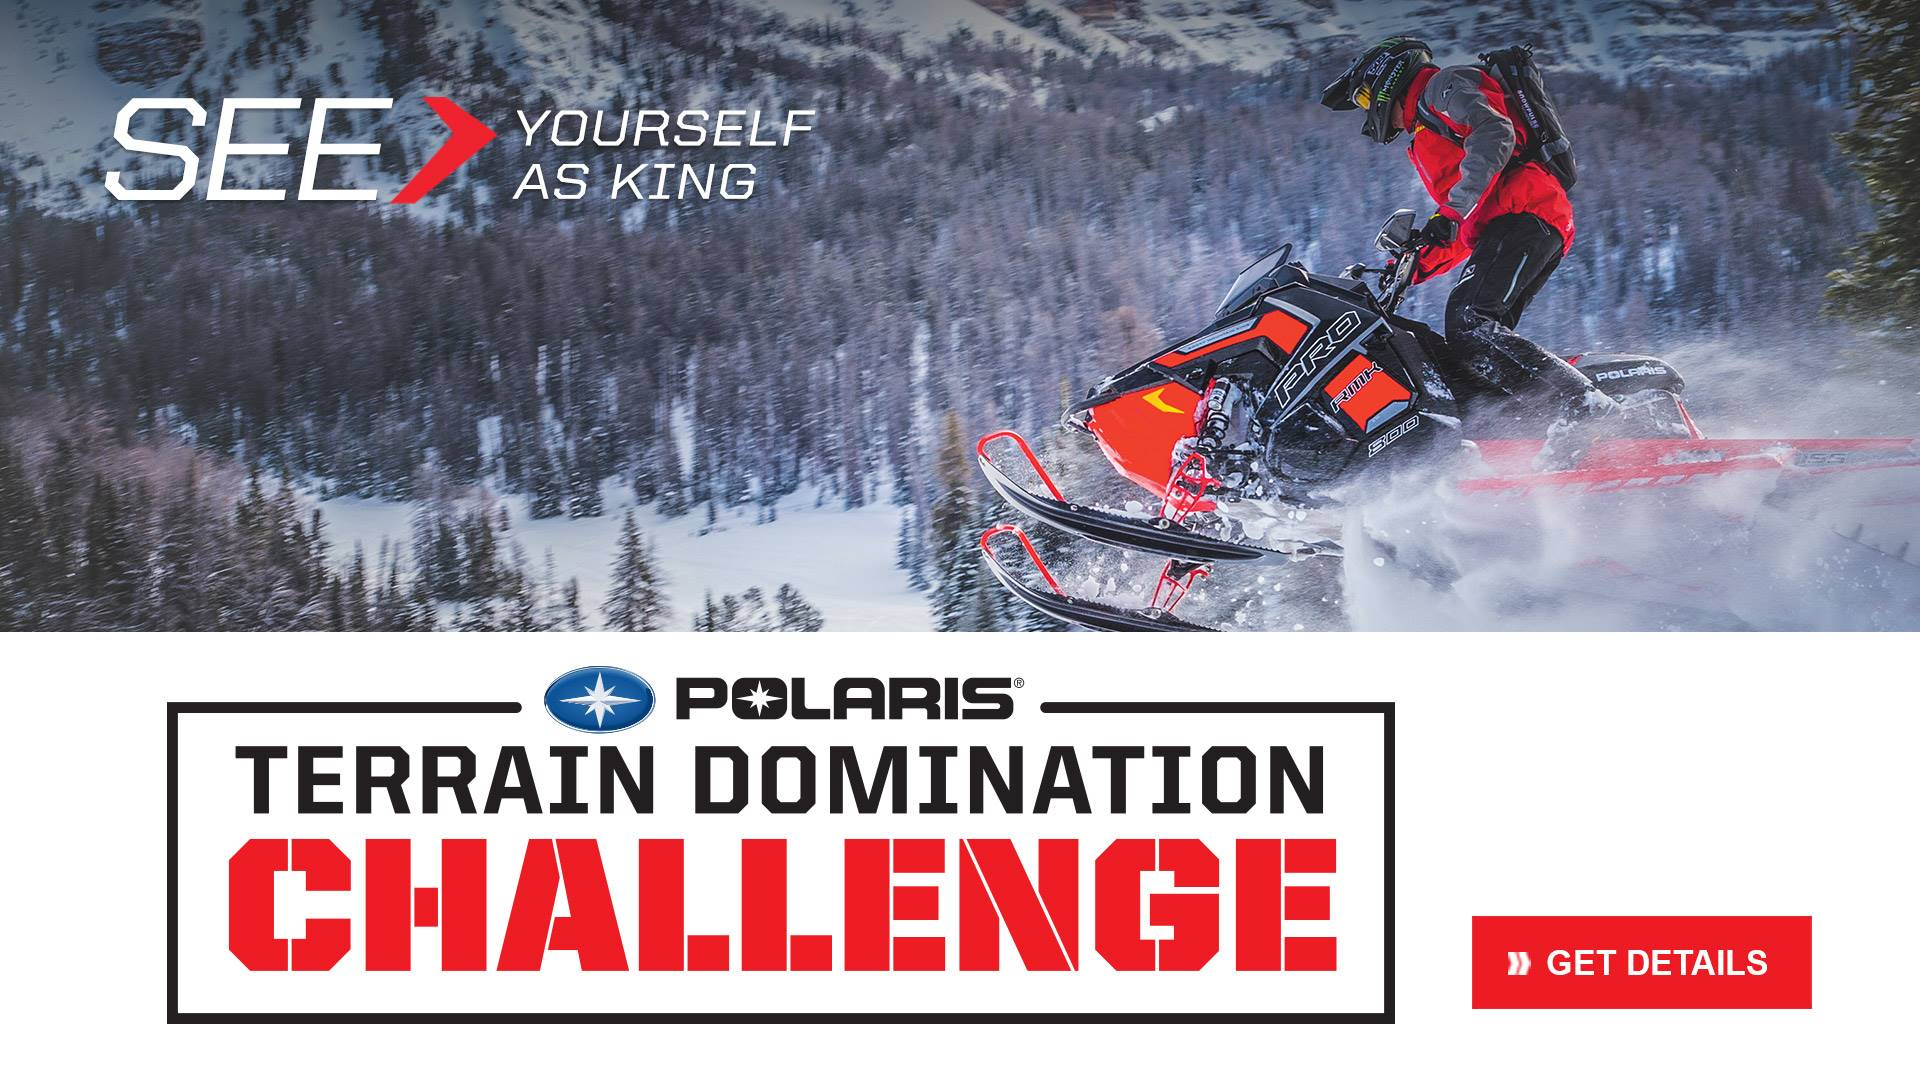 Polaris Terrain Domination